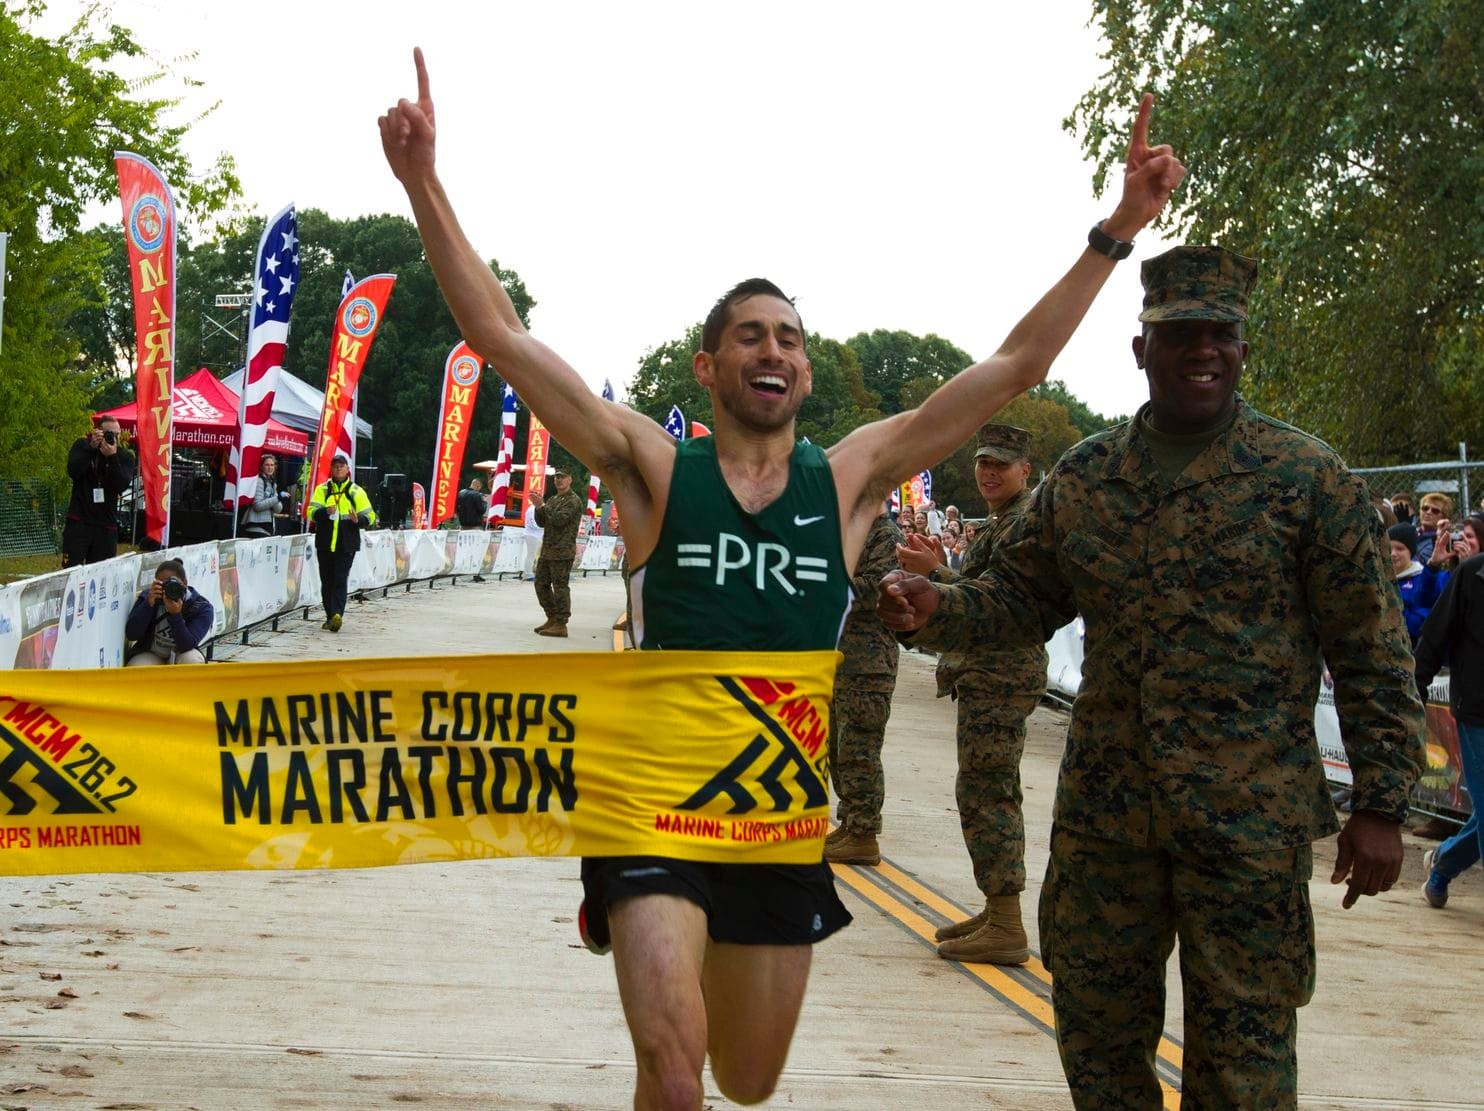 Jeffrey Stein won the 43rd Marine Corps Marathon, a first marathon win for this public defender